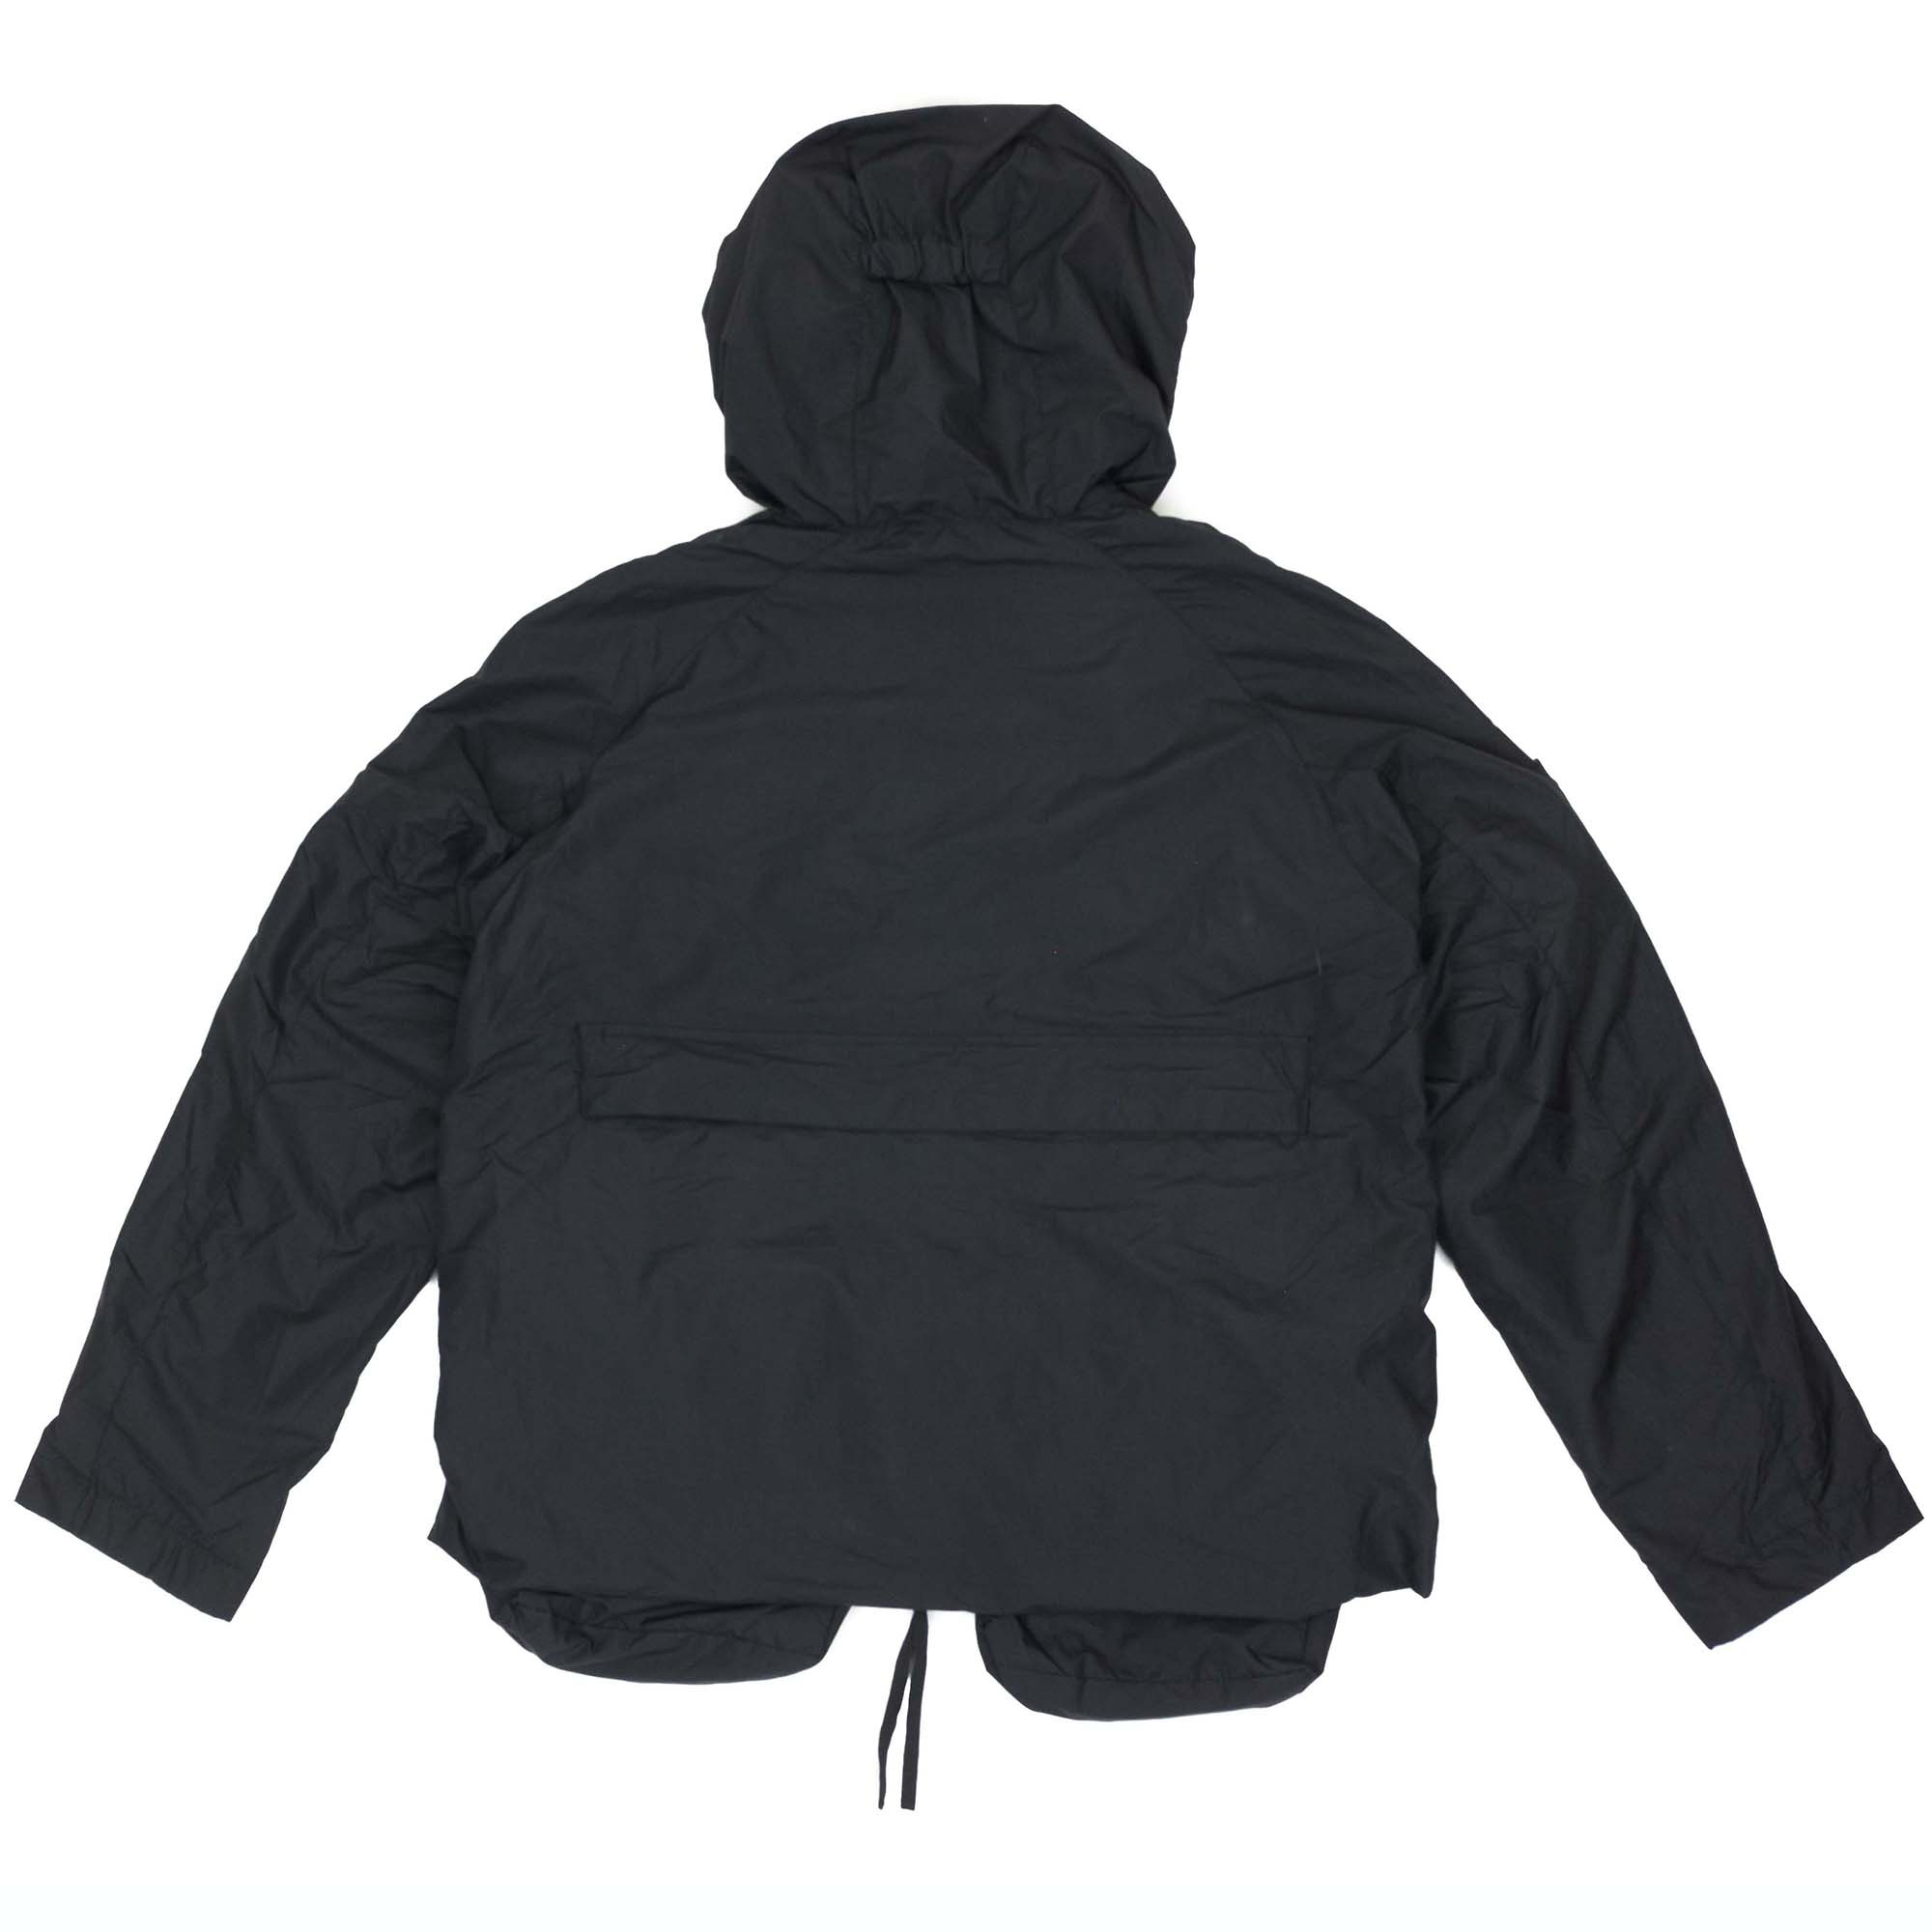 Riot Division Wrapping Parka 3 Gen - Black